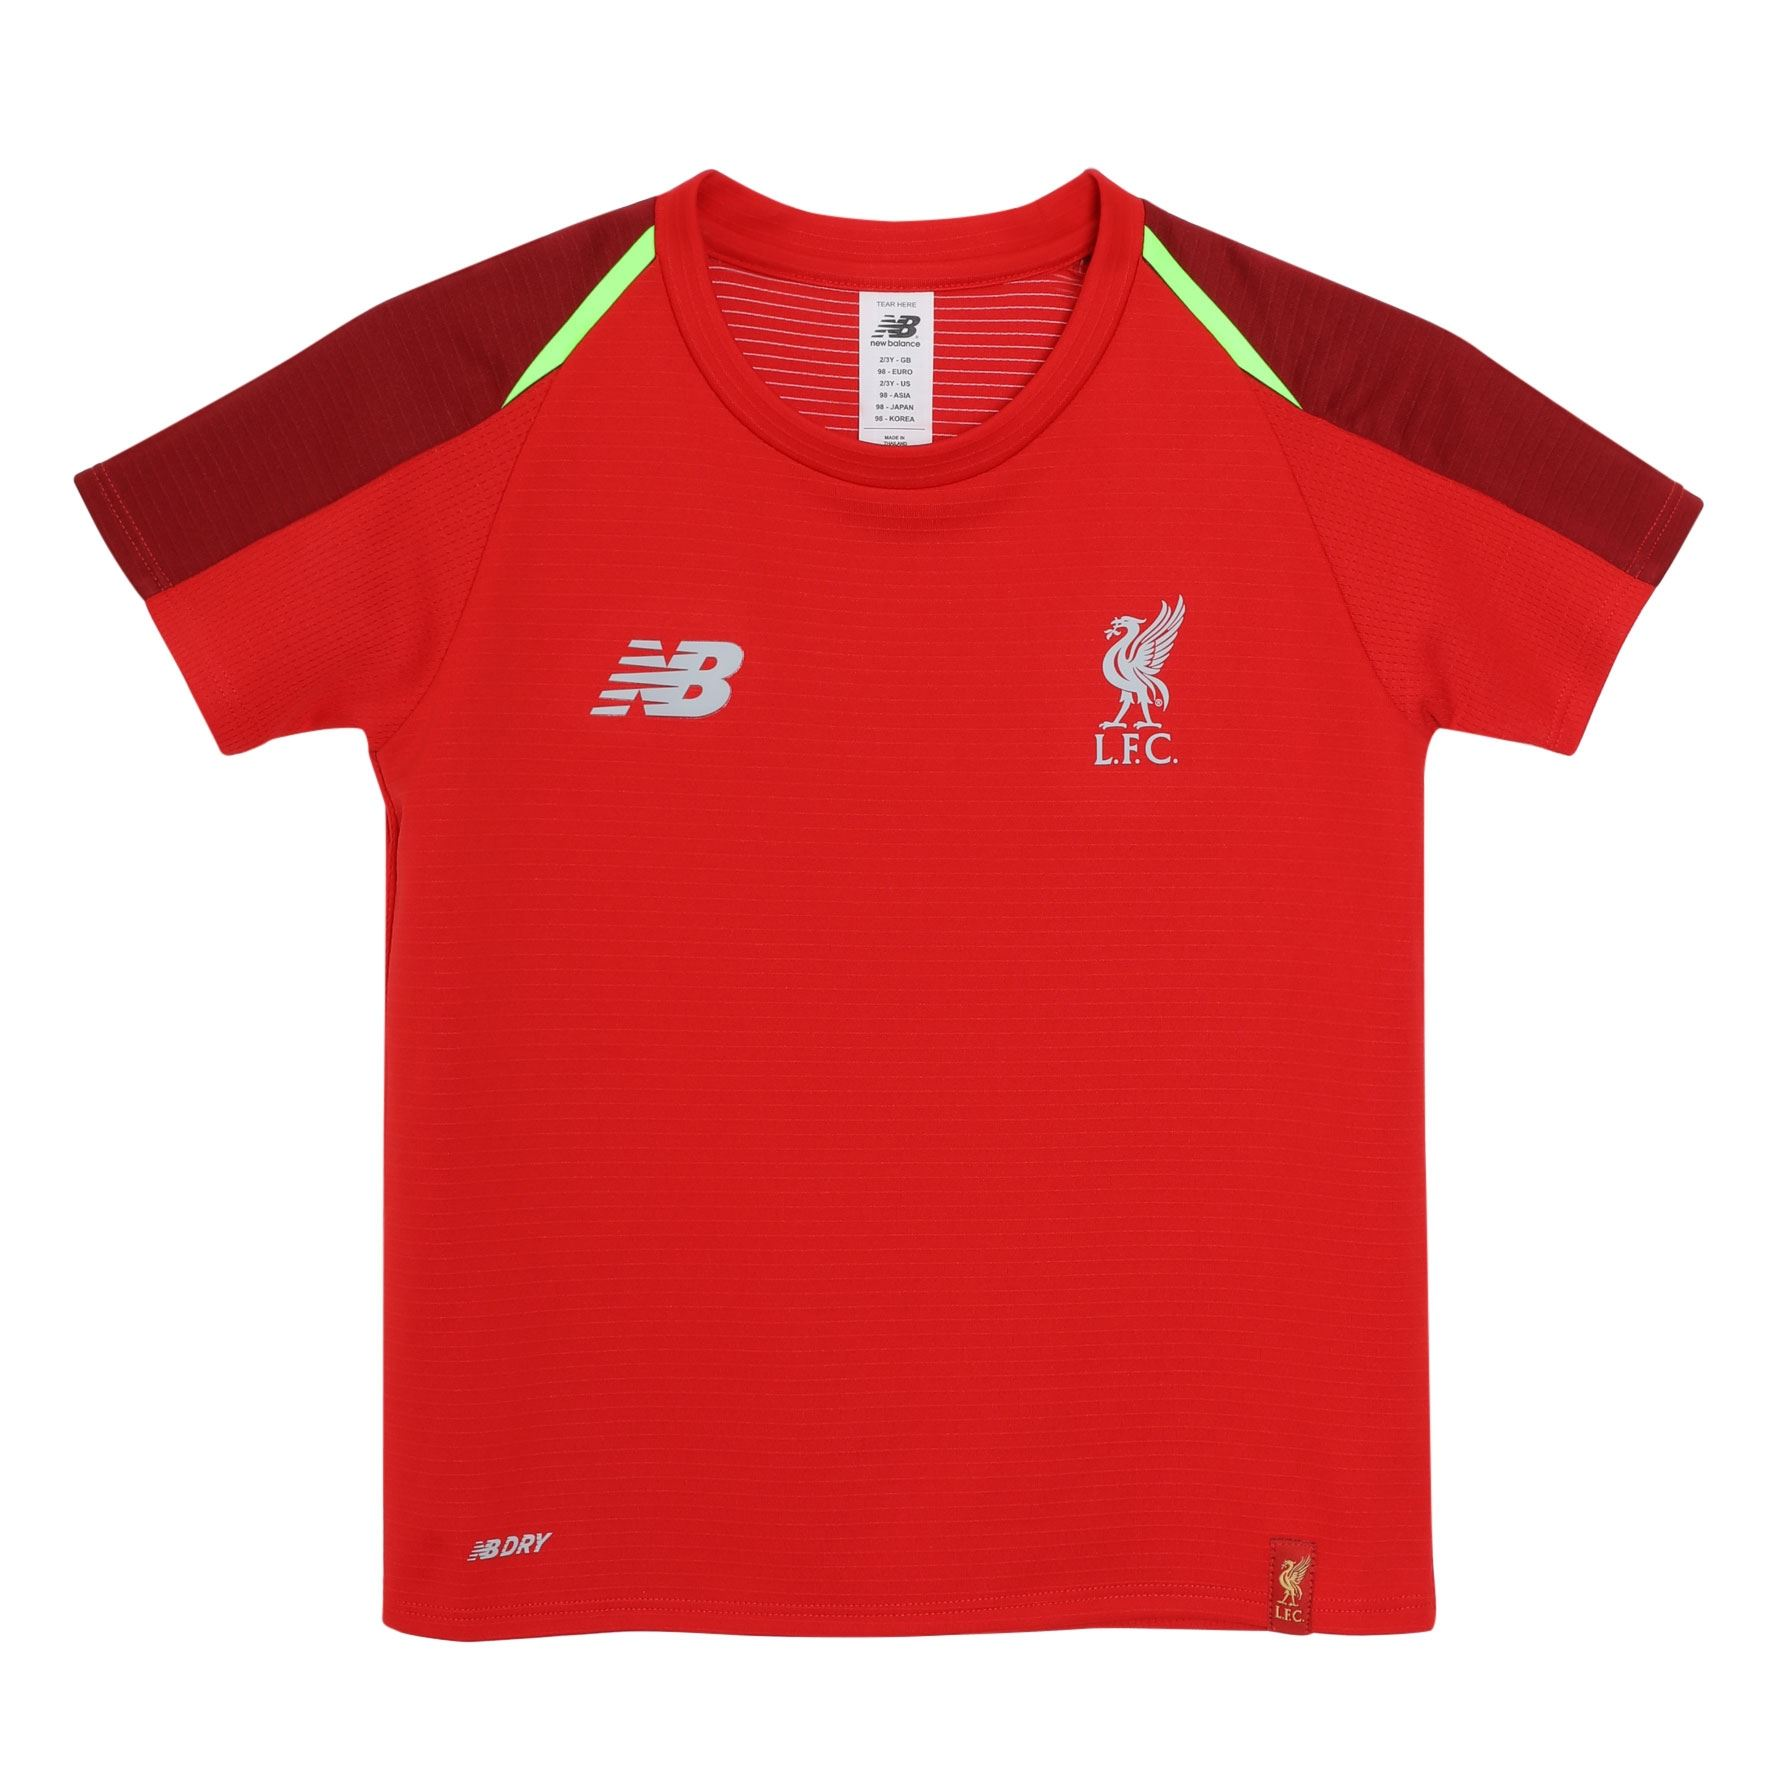 Details about Liverpool FC Red Polyester Infant Training Football Shirt  18 19 LFC Official 669a391f5